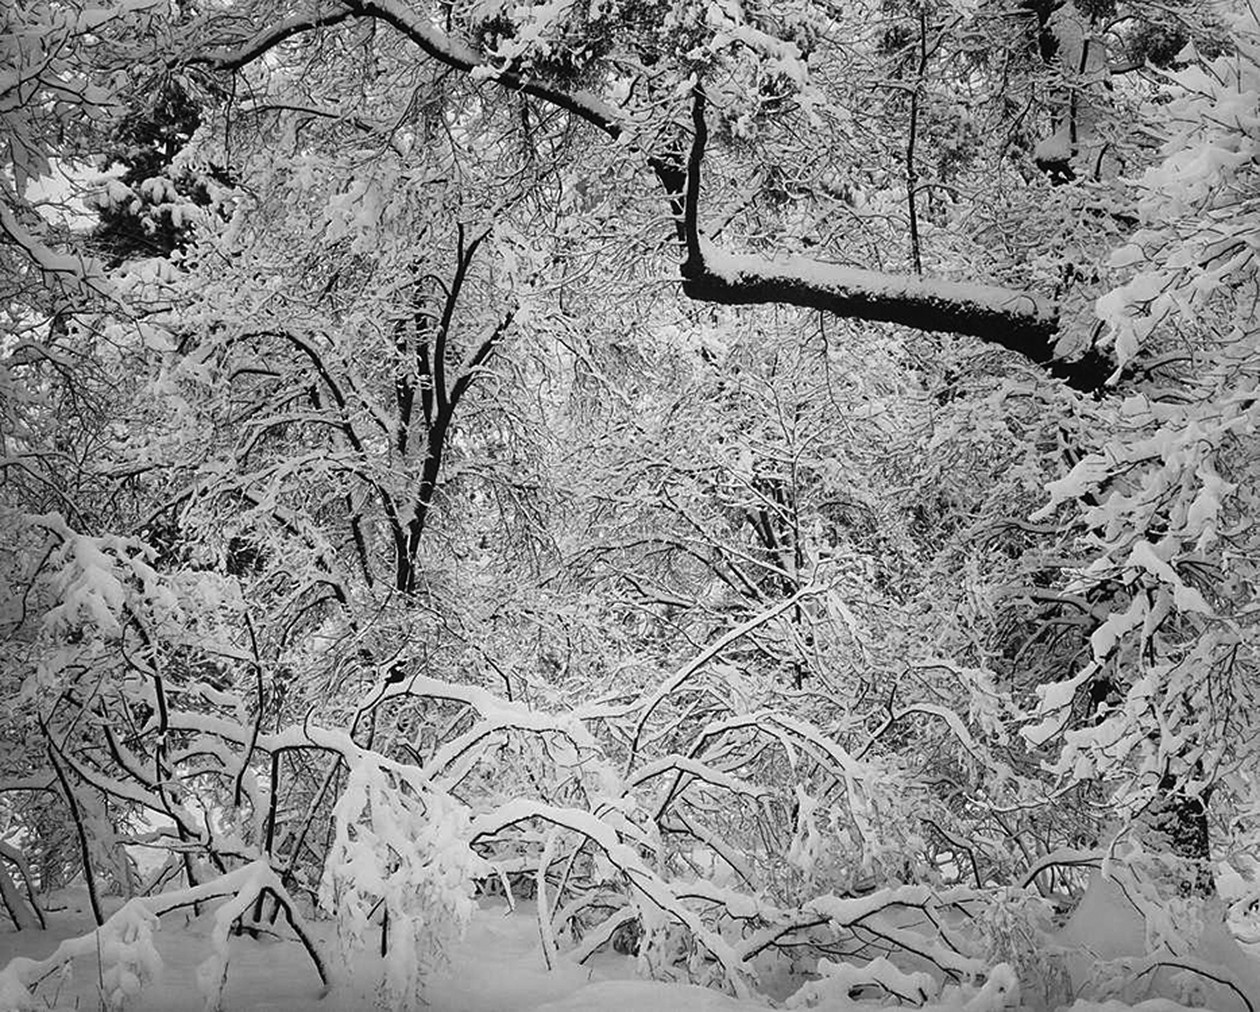 Fresh Snow, Yosemite Valley, California (c. 1947) by Ansel Adams